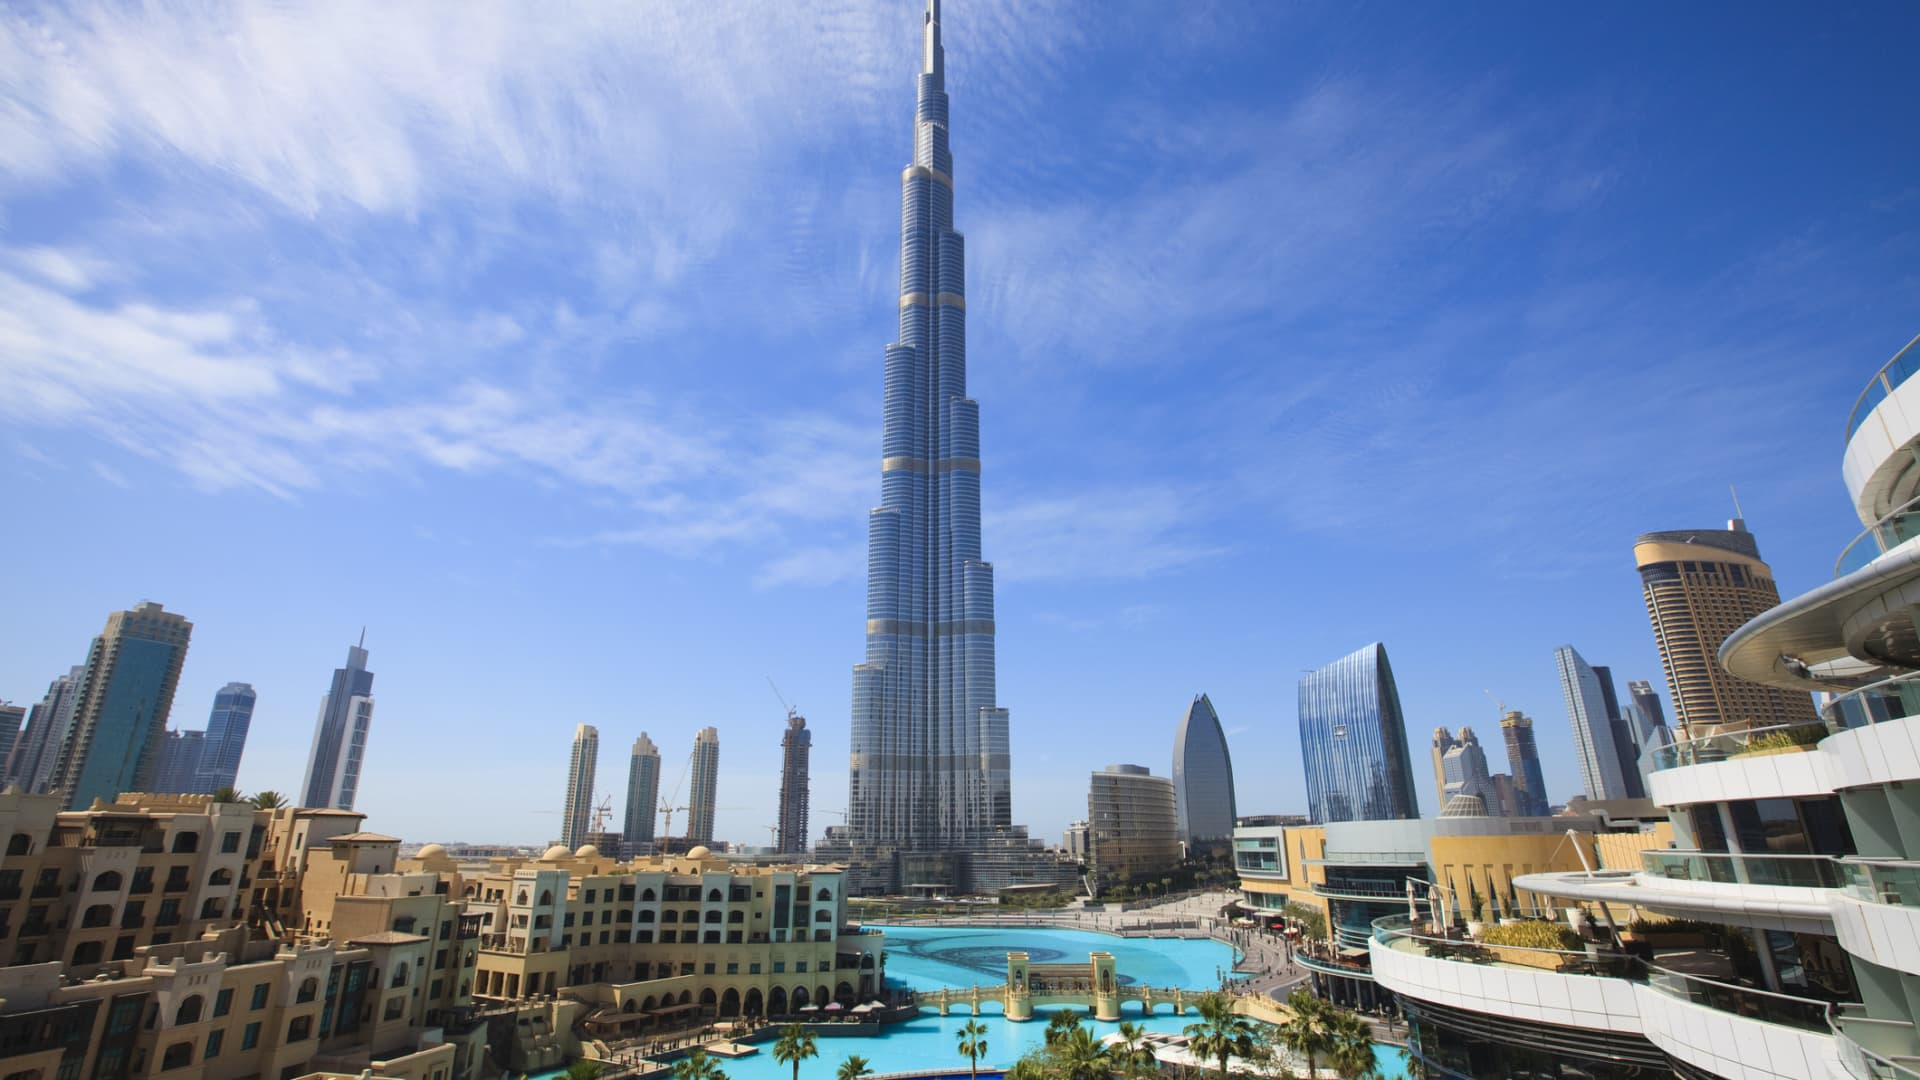 Dubai is known for its modern architecture, including the Burj Khalifa, which at 2,700 feet tall is nearly twice the height of the Empire State Building.